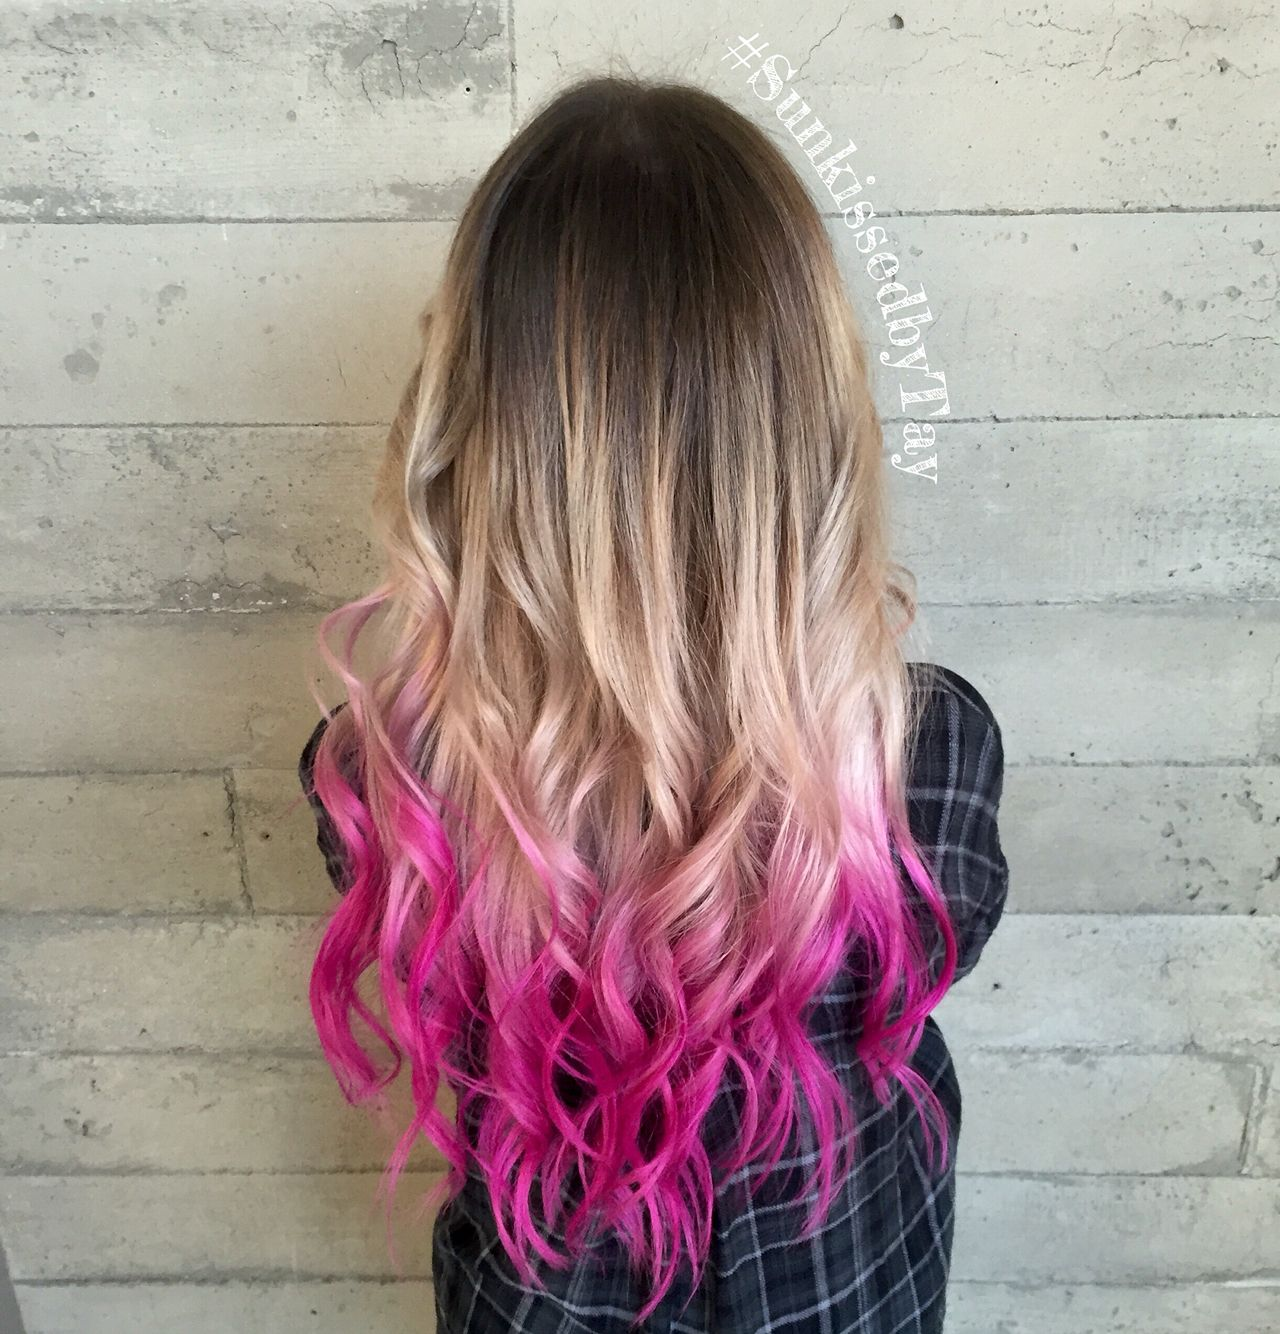 color melt blonde with pink tips | hair and lifestyle in